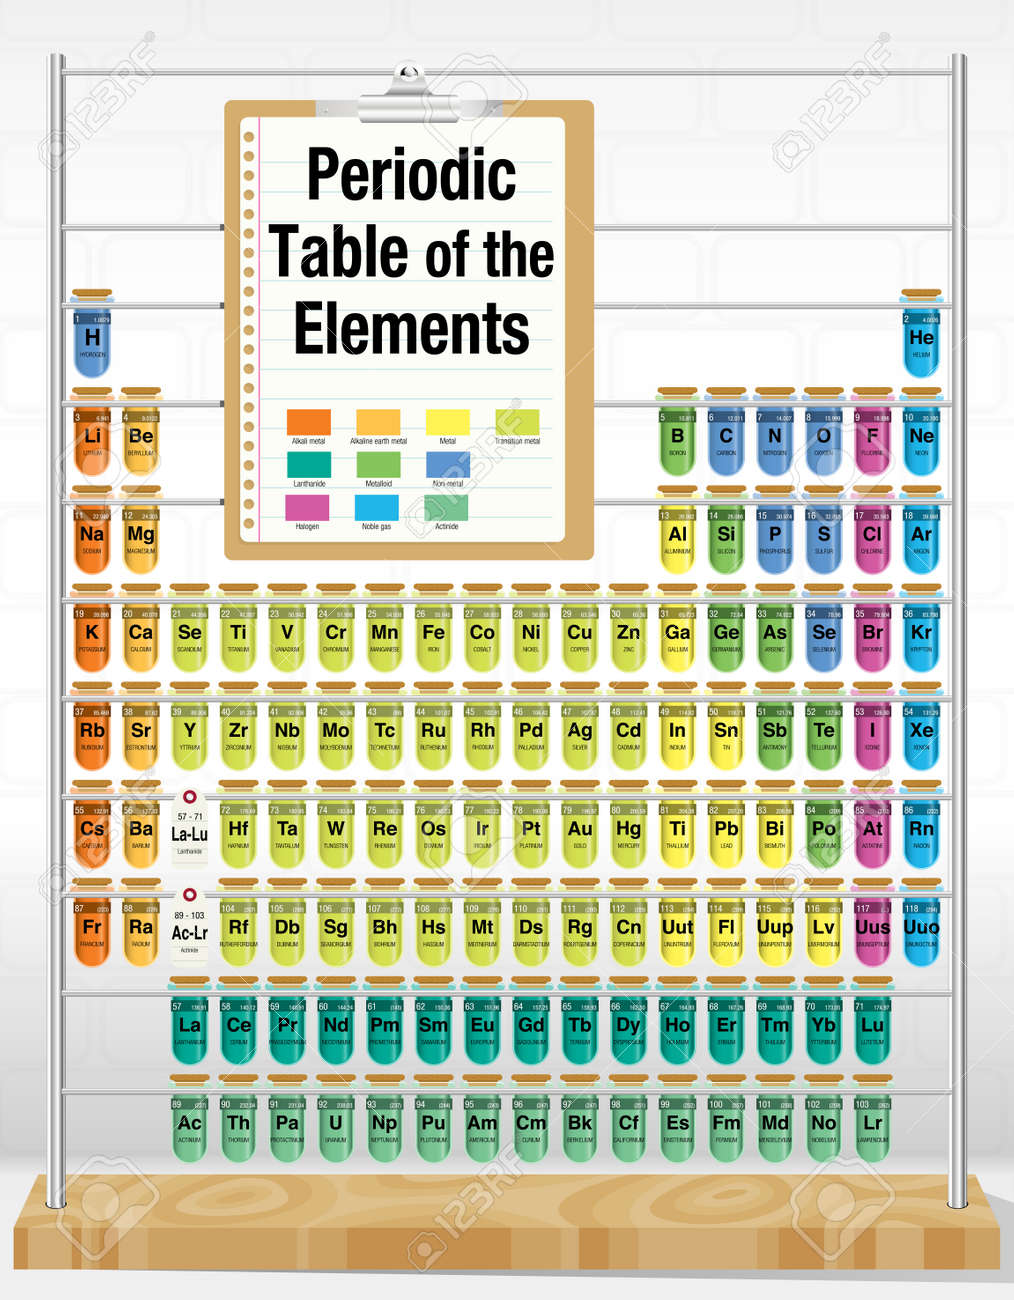 Periodic Table Of The Elements Consisting Of Test Tubes With